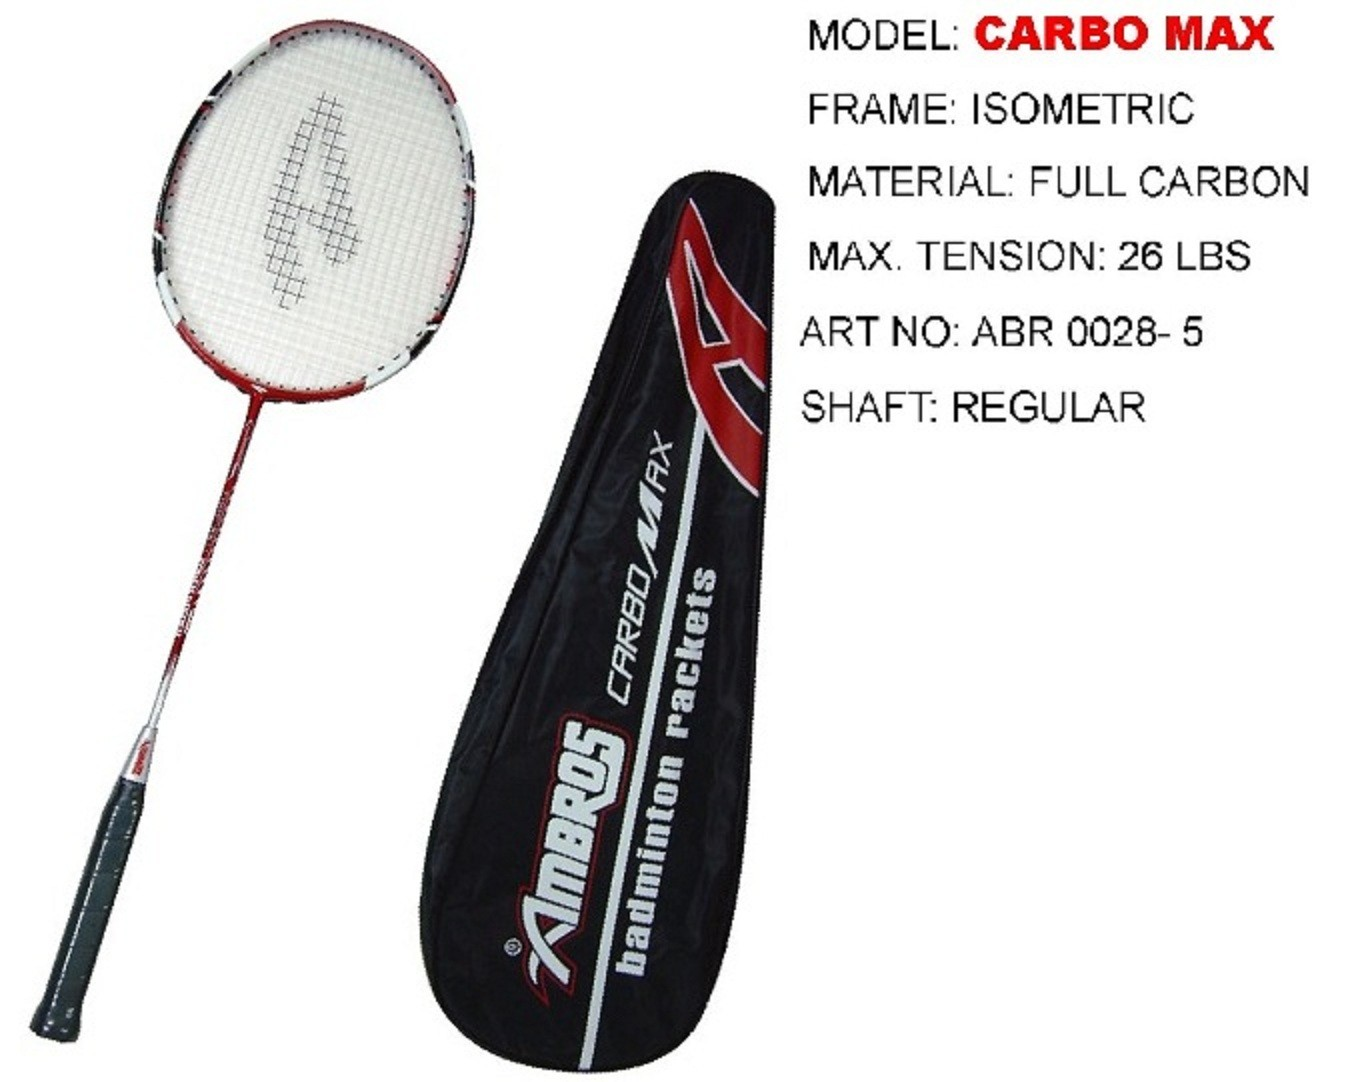 Ambros Badminton Racket Carbo Max